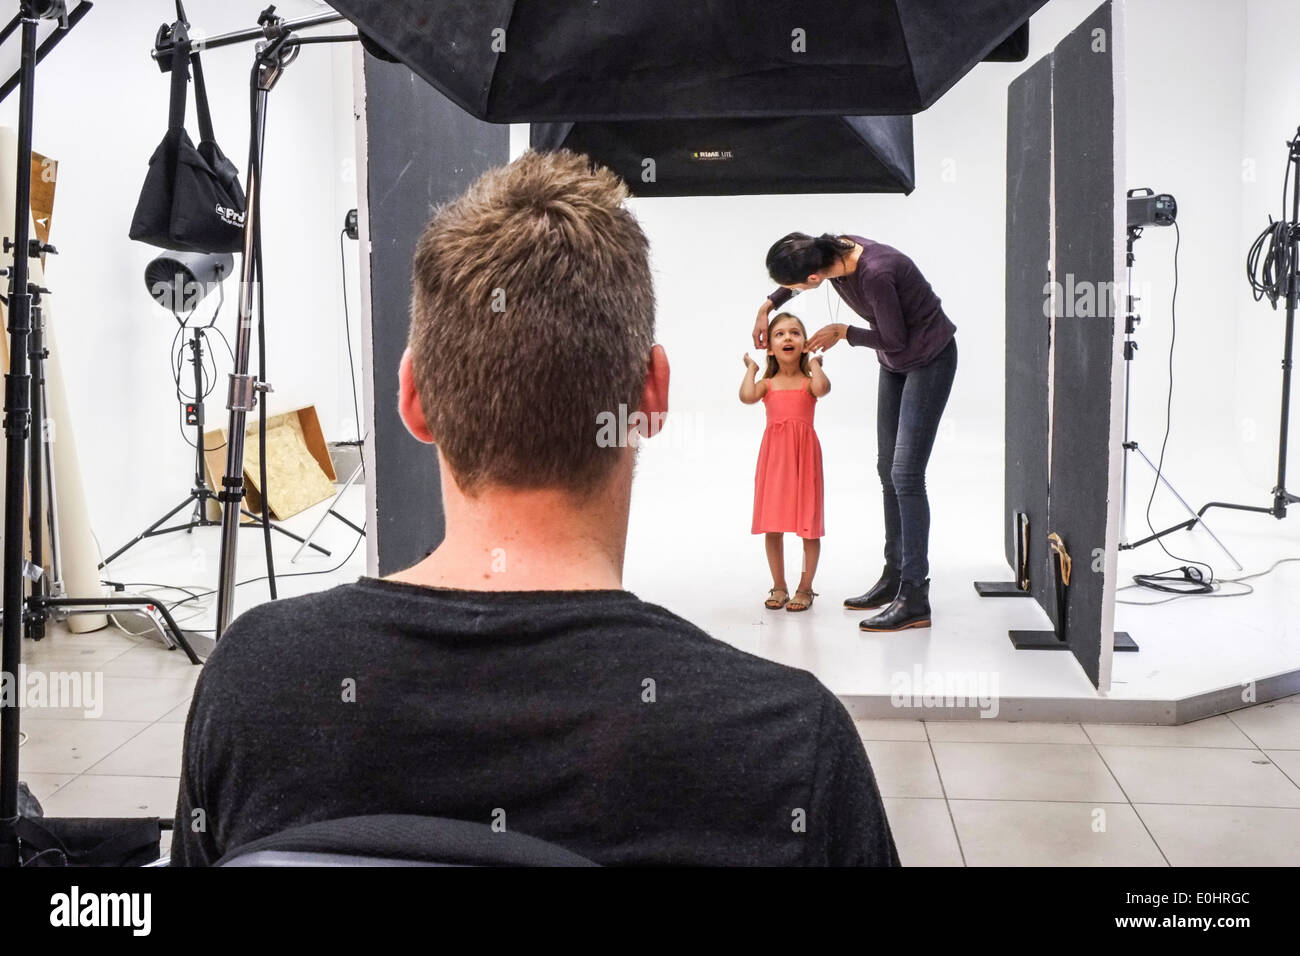 Young female child on a set during a photoshoot for a fashion company The stylist is adjusting the clothes and hair - Stock Image